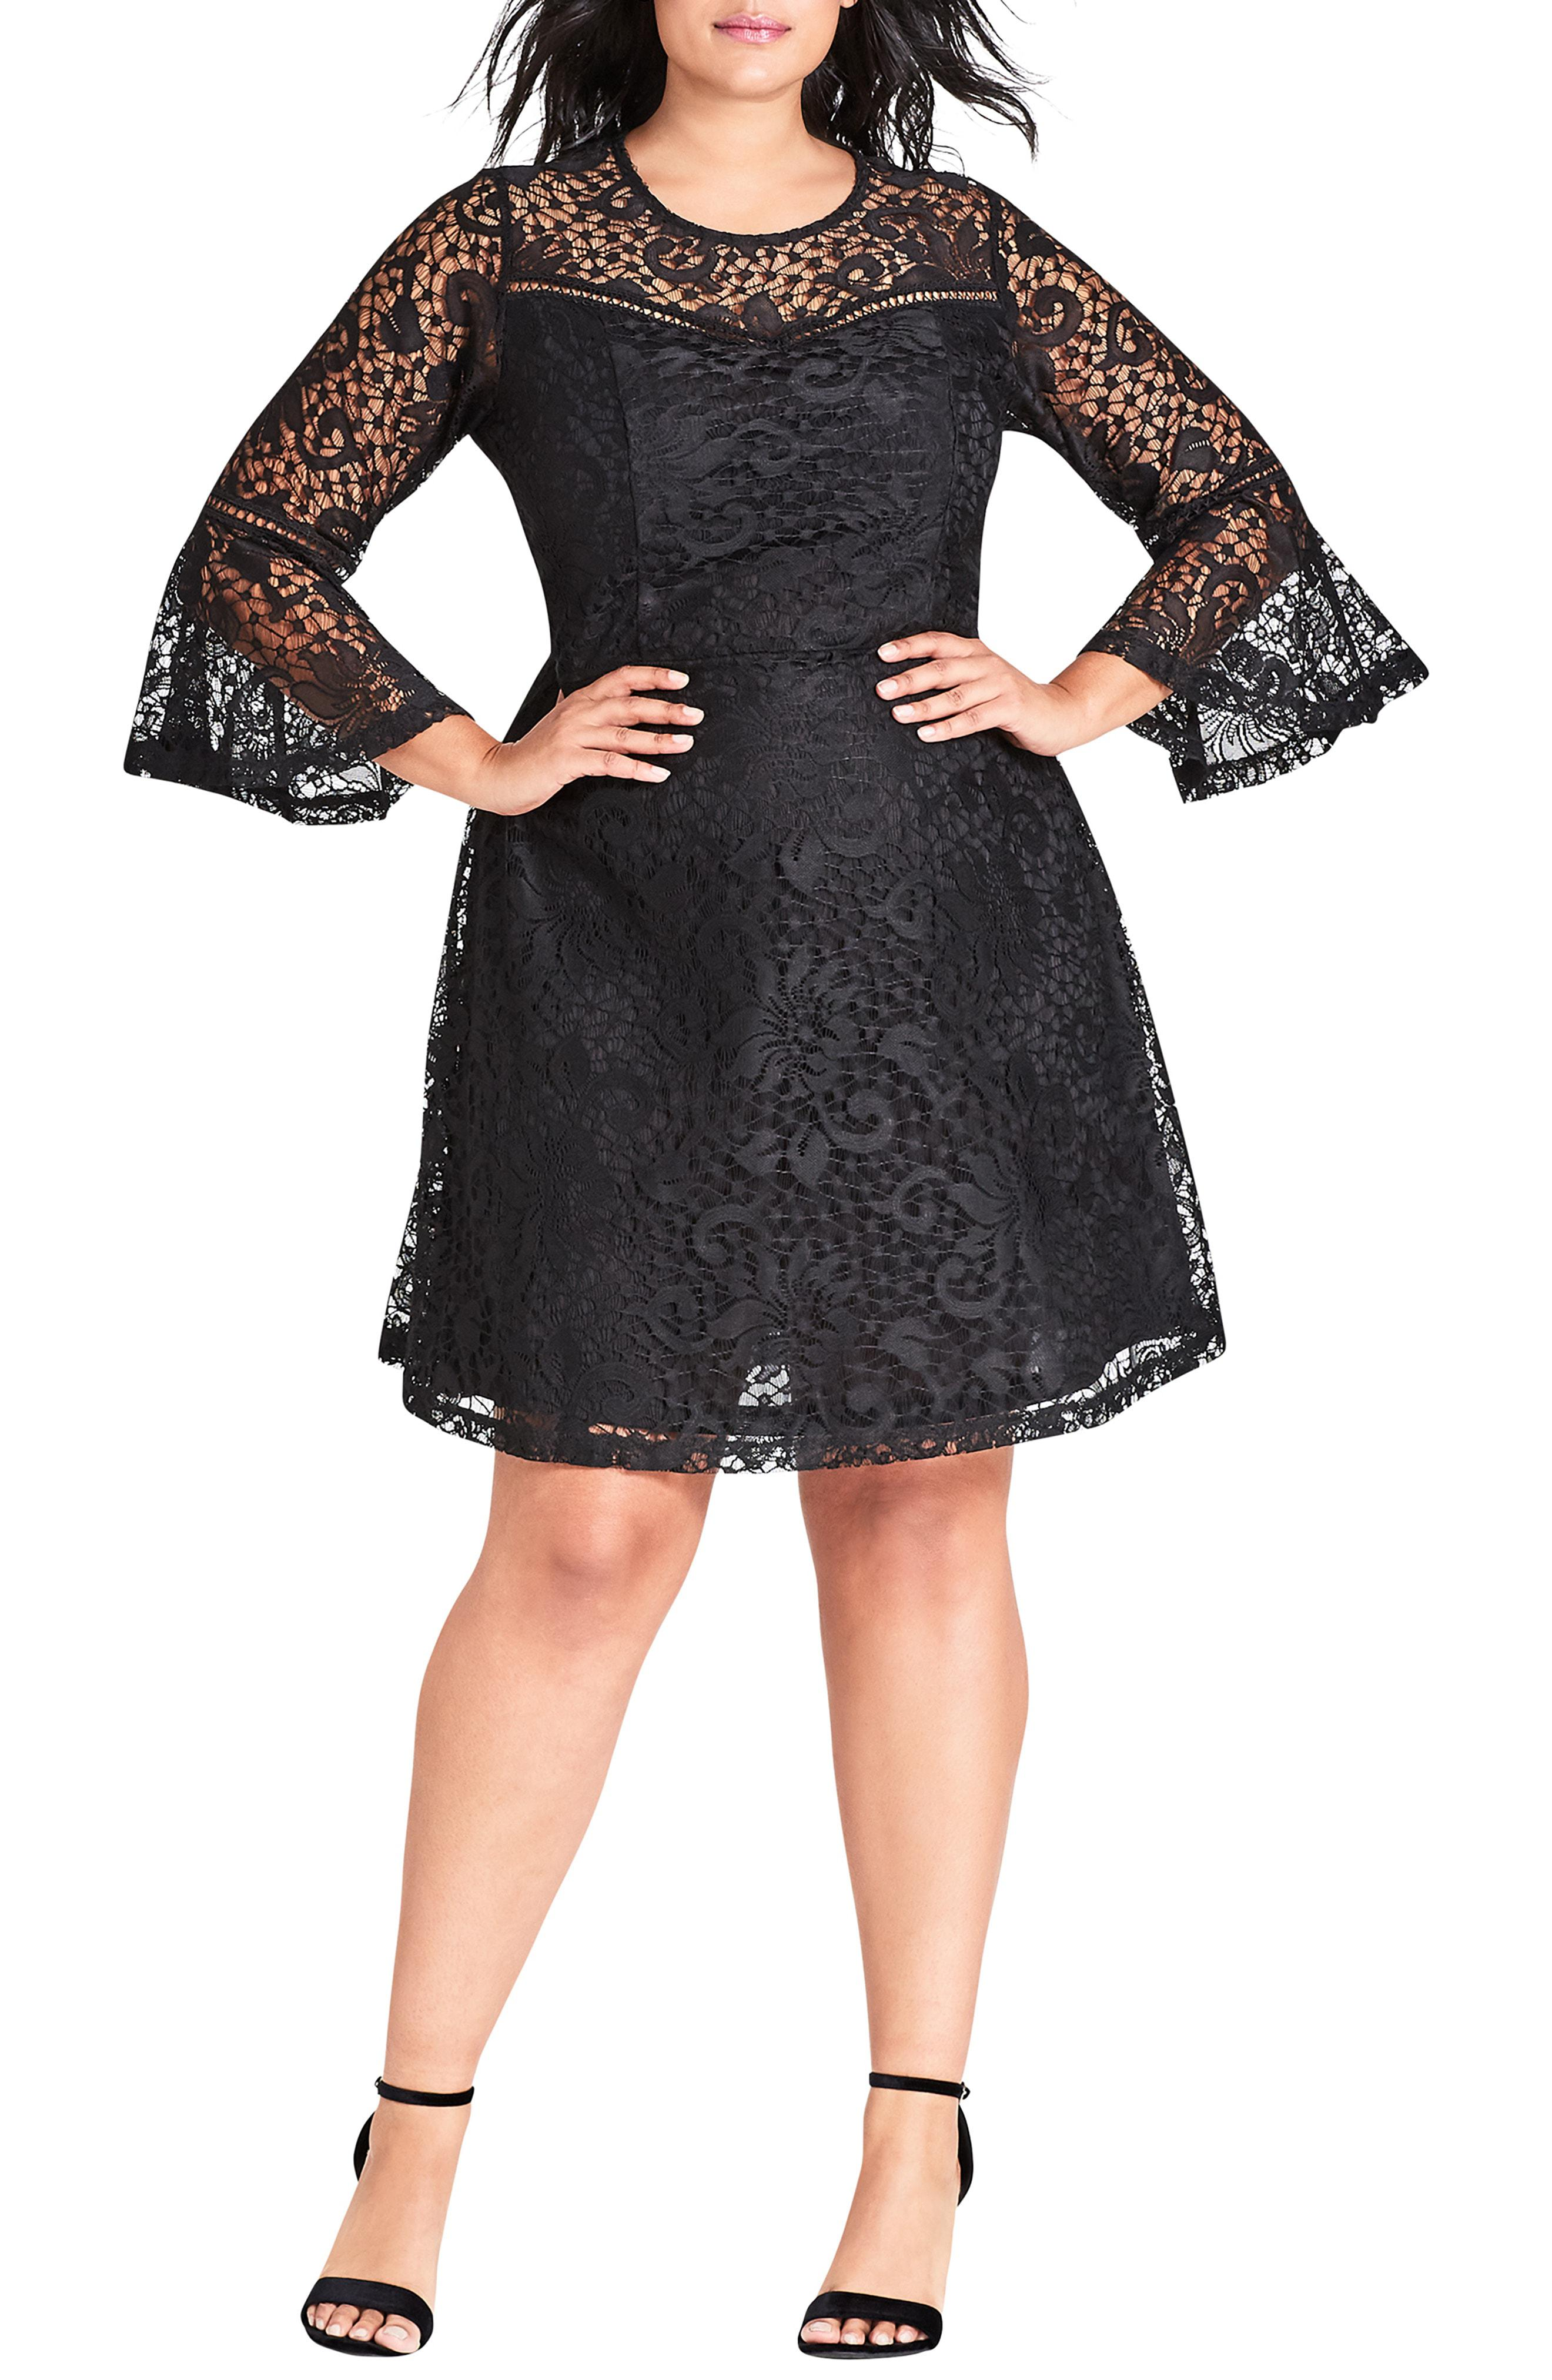 6840d75d9521 Lyst - City Chic Lace Fit & Flare Dress in Black